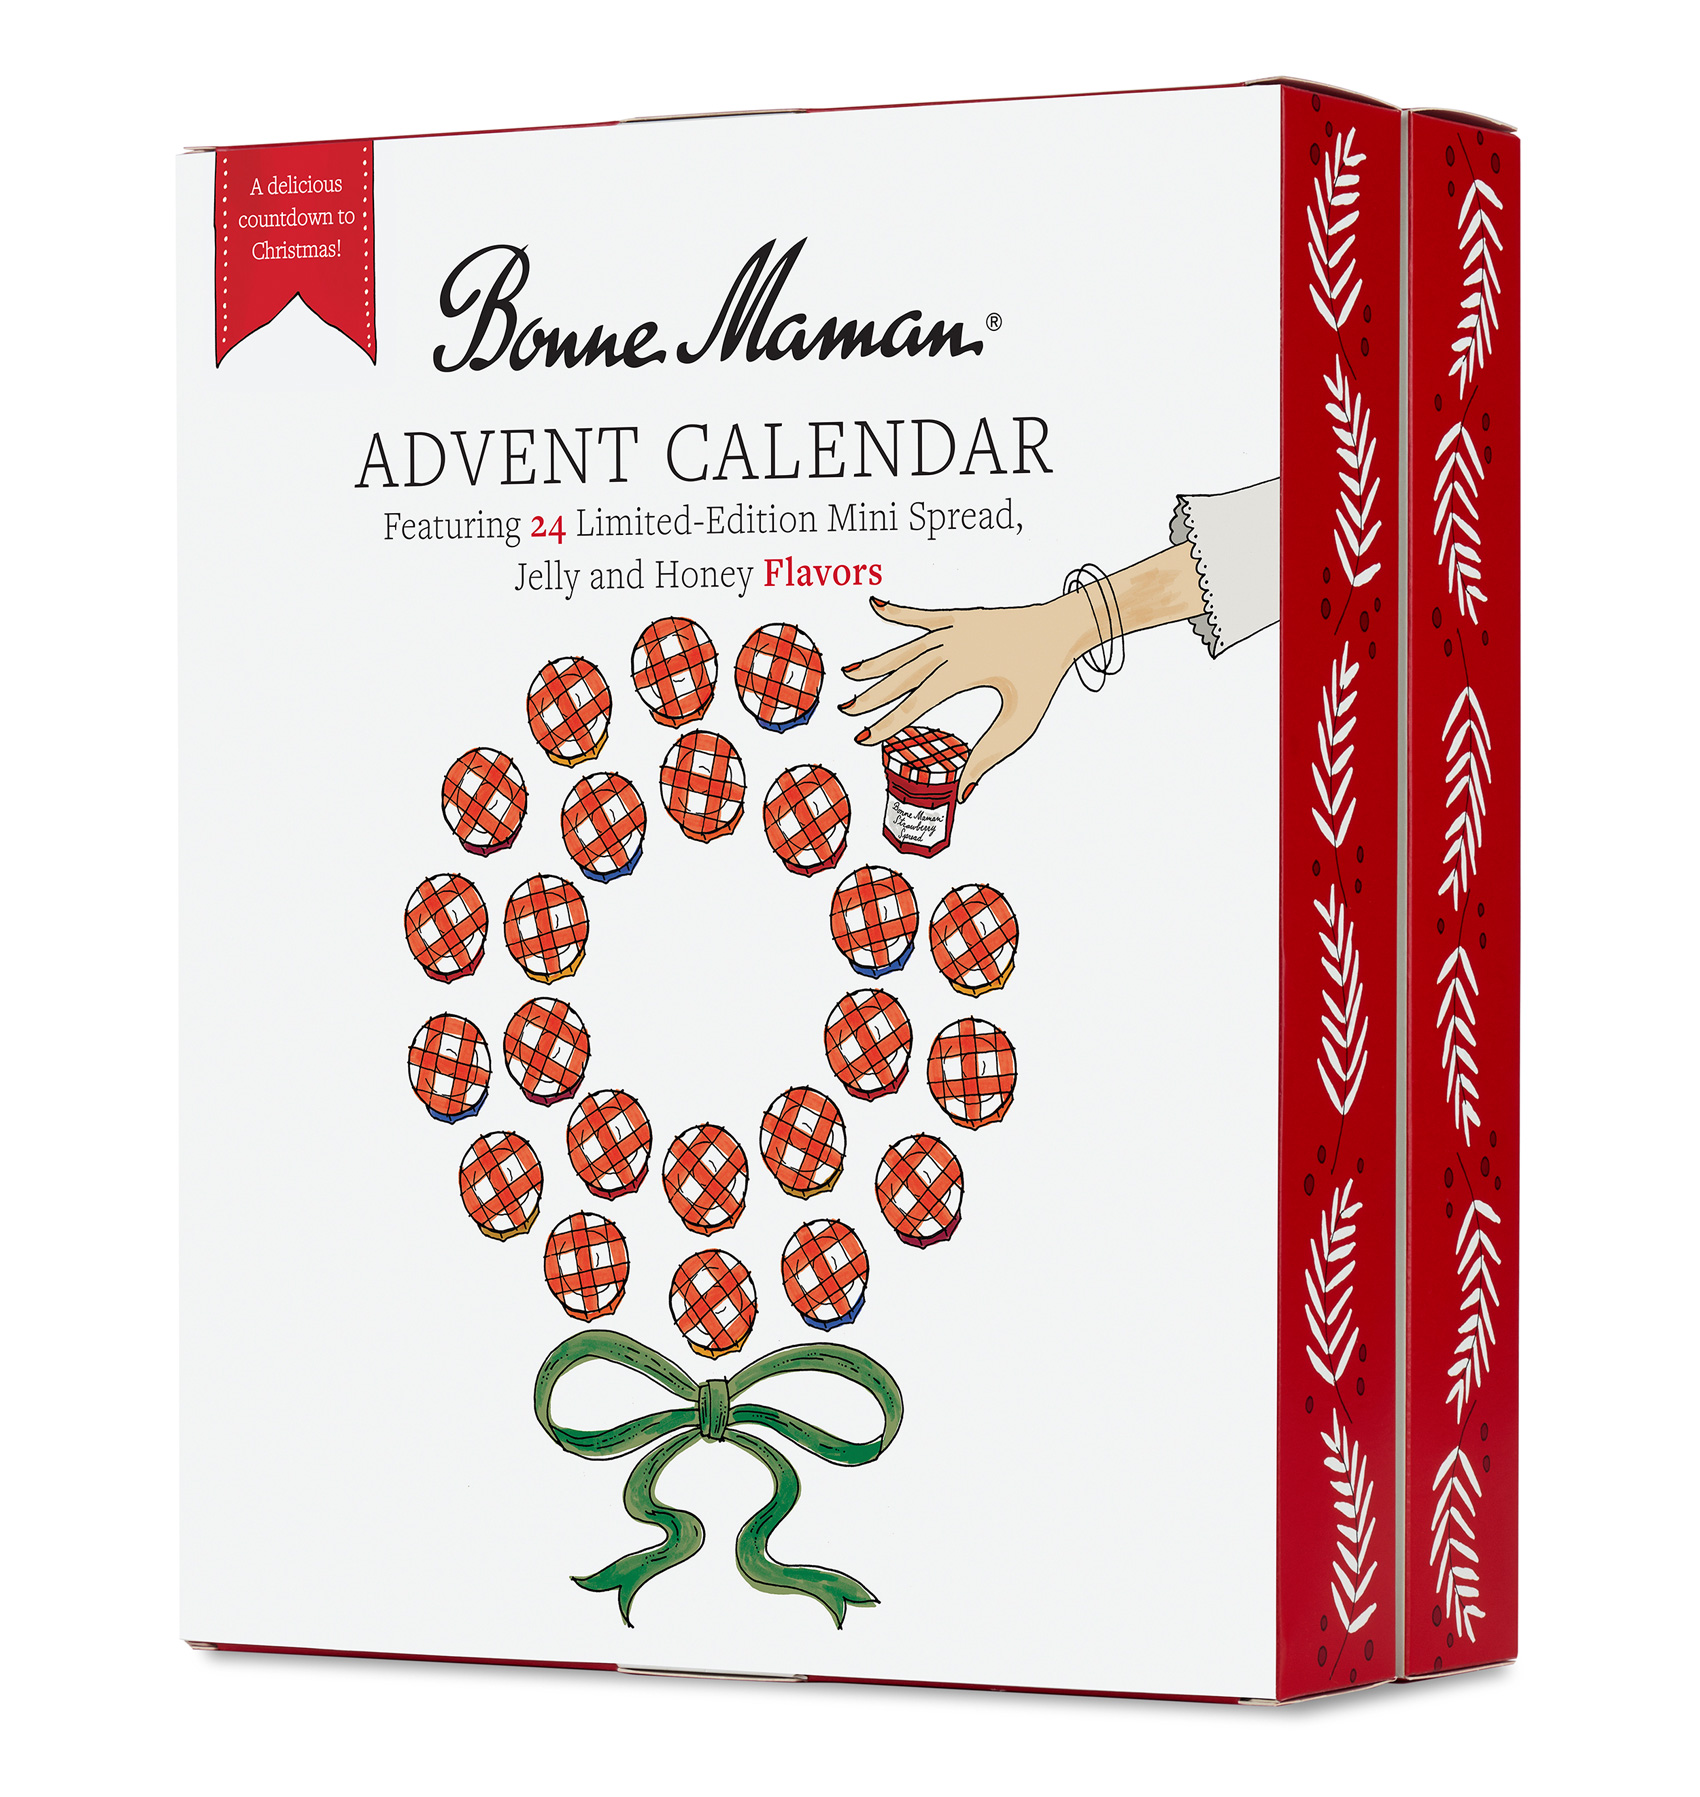 Front of box for the Bonne Maman advent calendar features a wreath of mini-jars of preserves  with the classic red and white checkered lid, one being plucked for enjoyment.